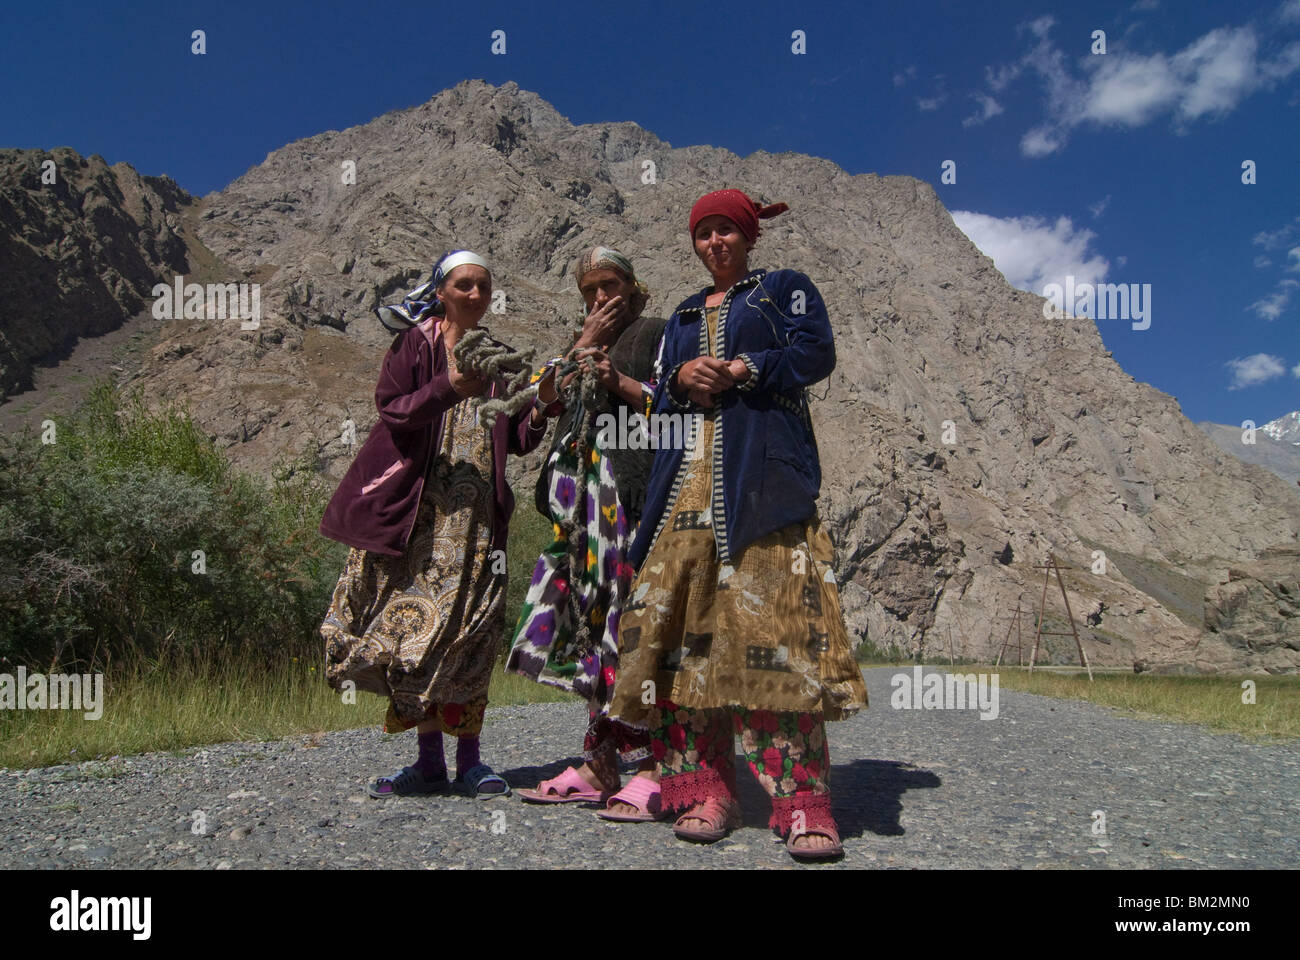 Field path leading to Dushanbe, Bartang Valley, Tajikistan - Stock Image